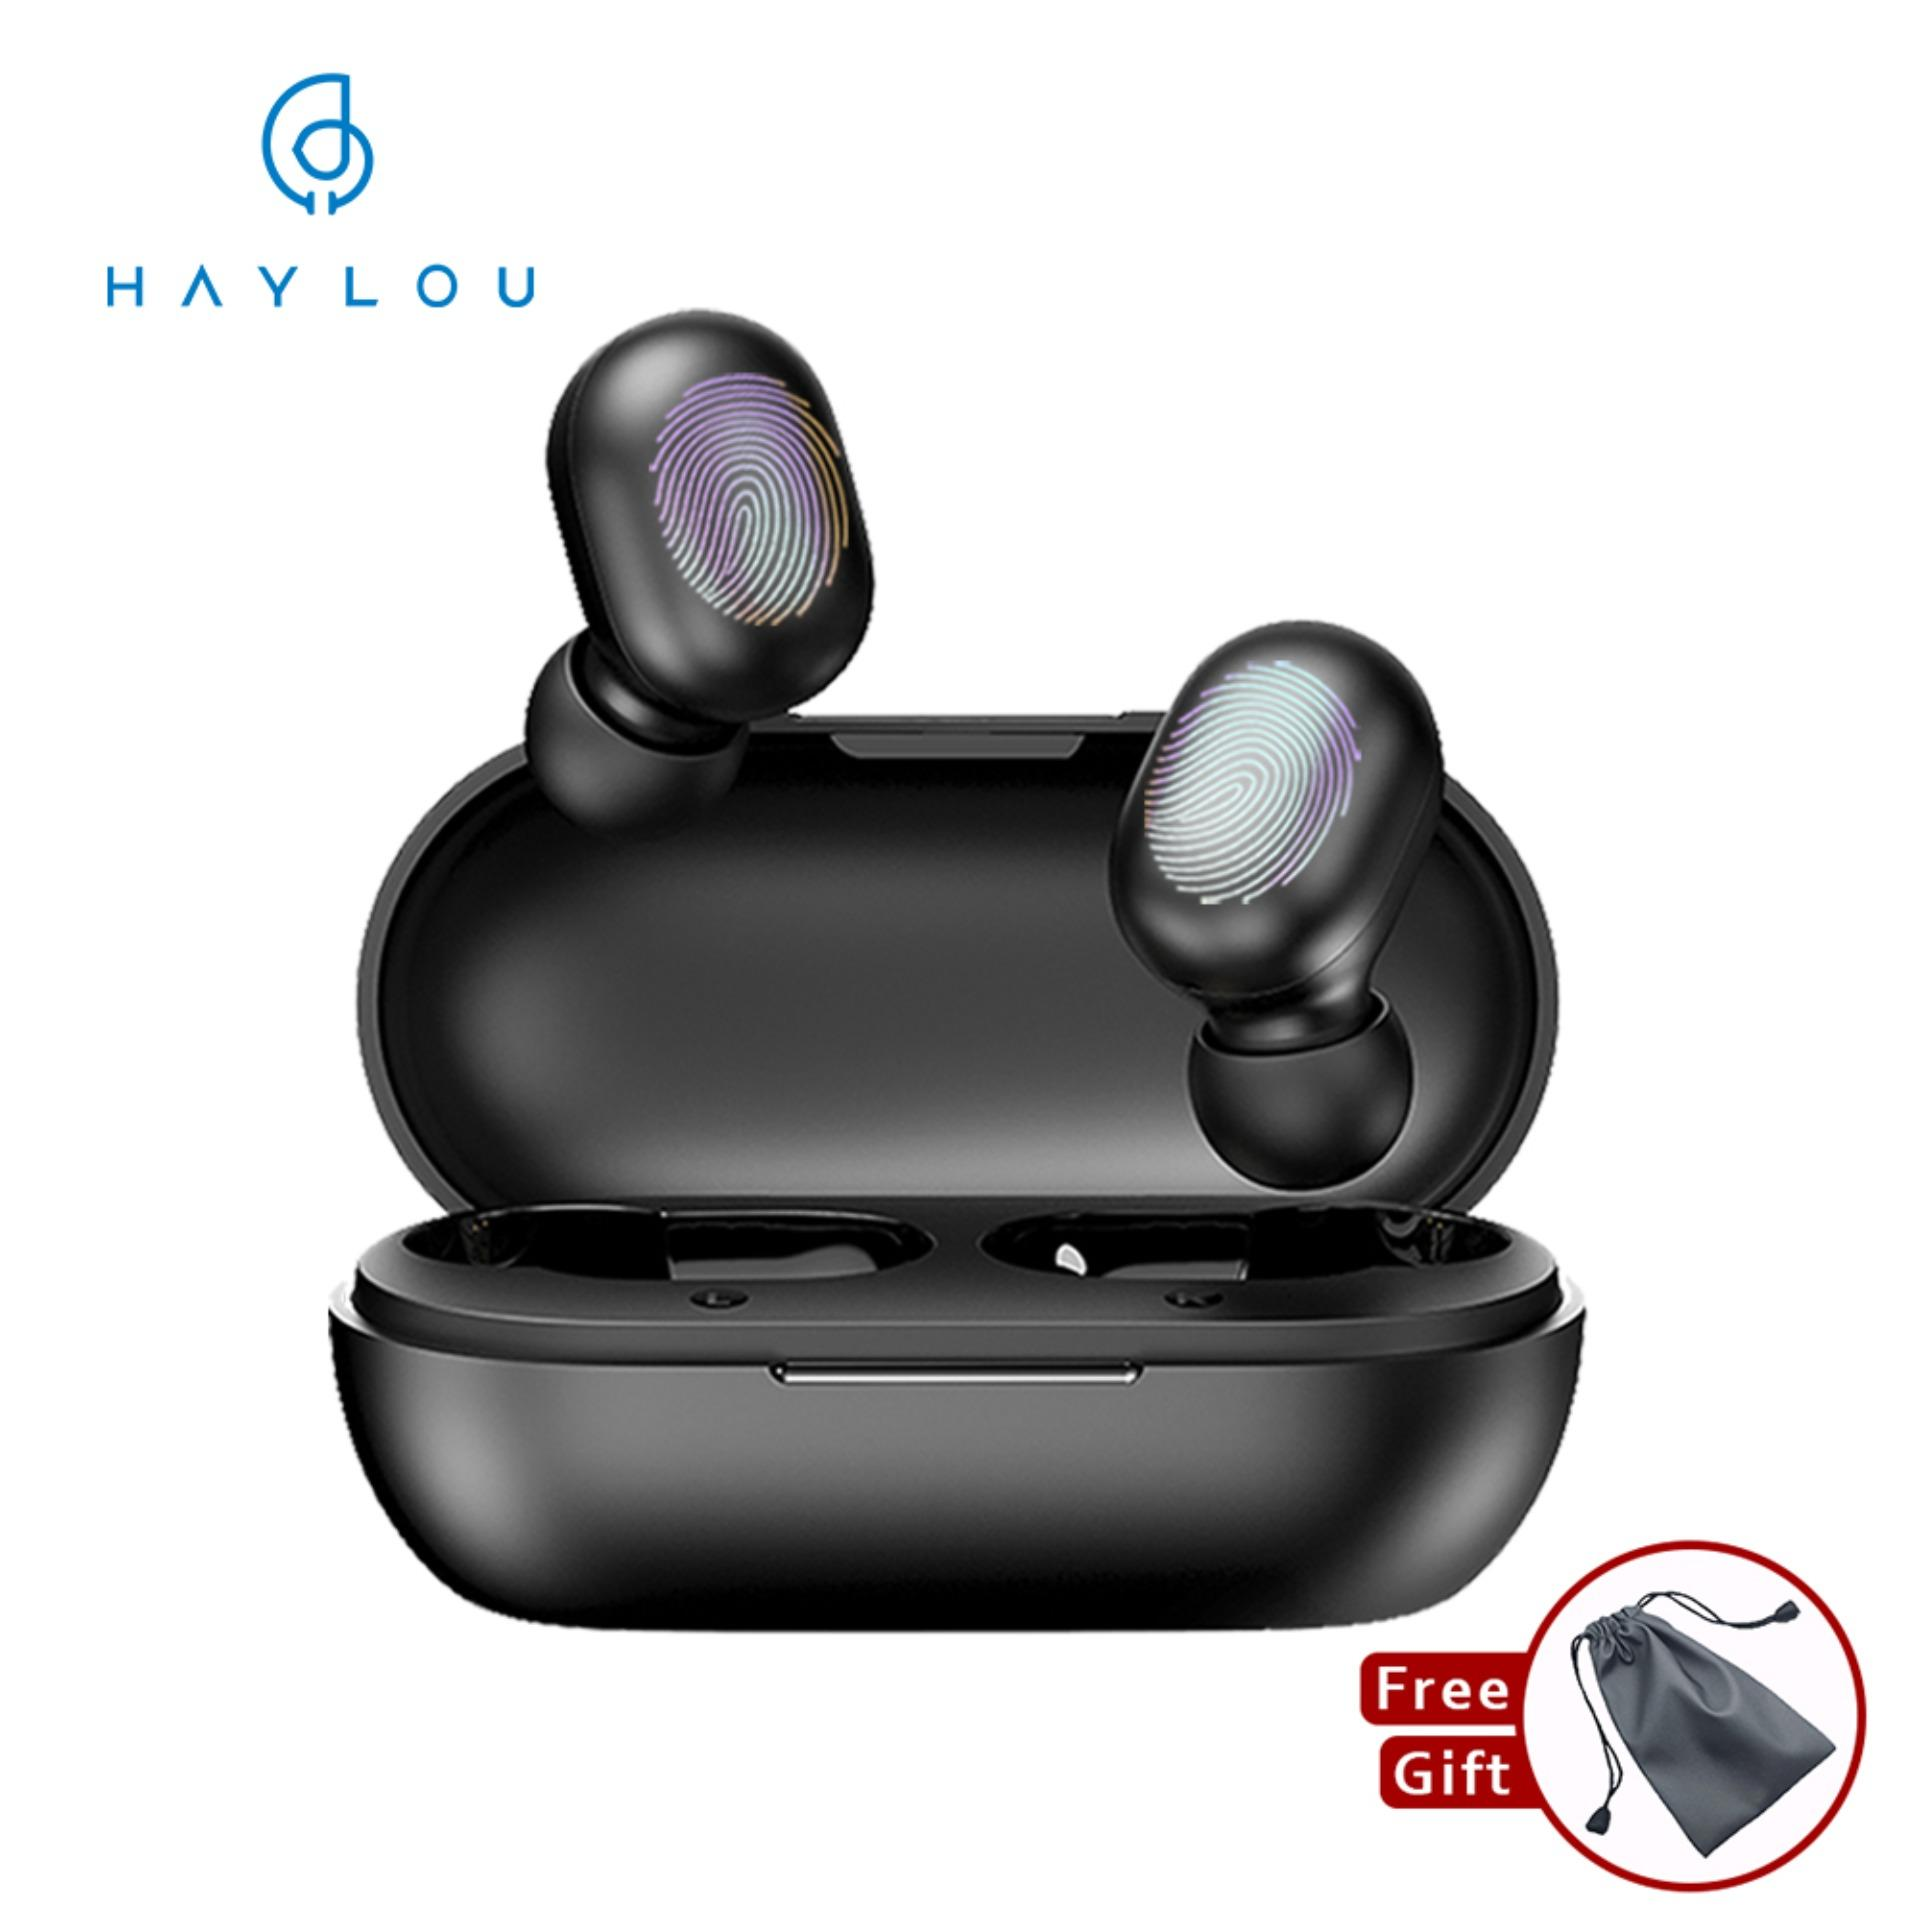 Xiaomi Haylou GT1 TWS Touch Control Wireless Bluetooth 5.0 Earphones Sport Music Earbuds Stereo Headphone Noise Cancelling Gaming Headset with Microphone Binaural Call